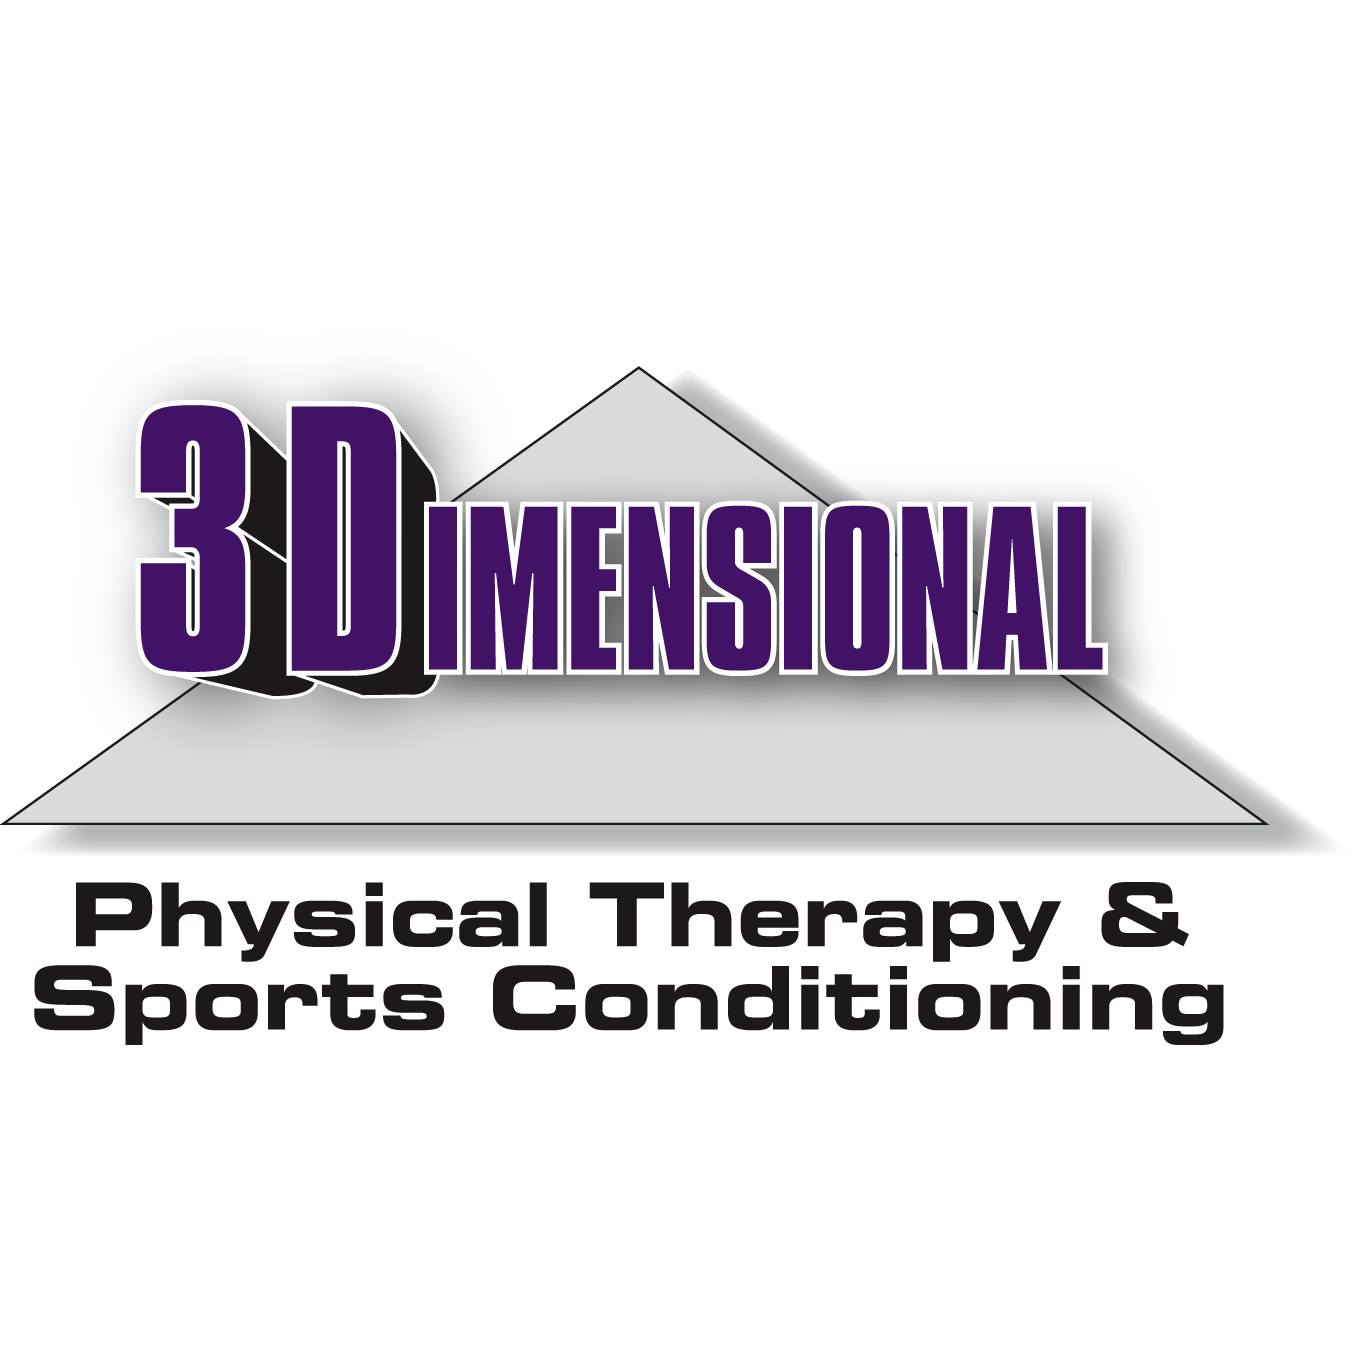 3Dimensional Physical Therapy & Sports Conditioning